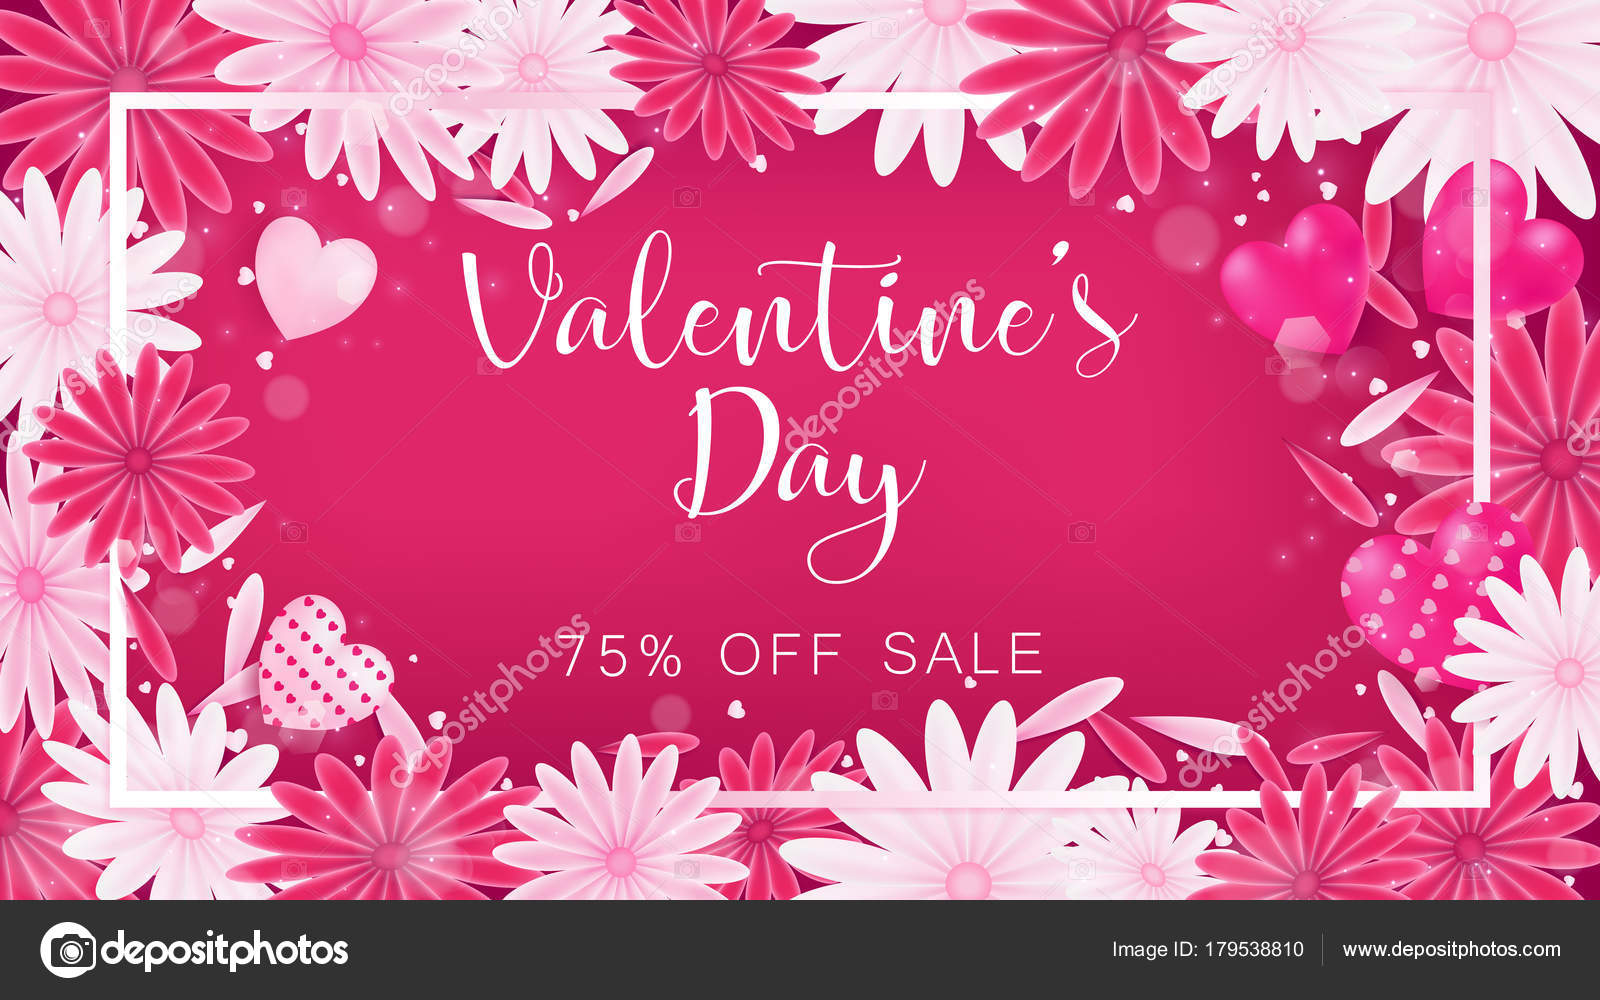 Valentine floral invitation decorate red pink color flower blooming valentine floral invitation is decorate in red and pink color as flower blooming border is pearl pink along with petals are dropped on beside usage in stopboris Images